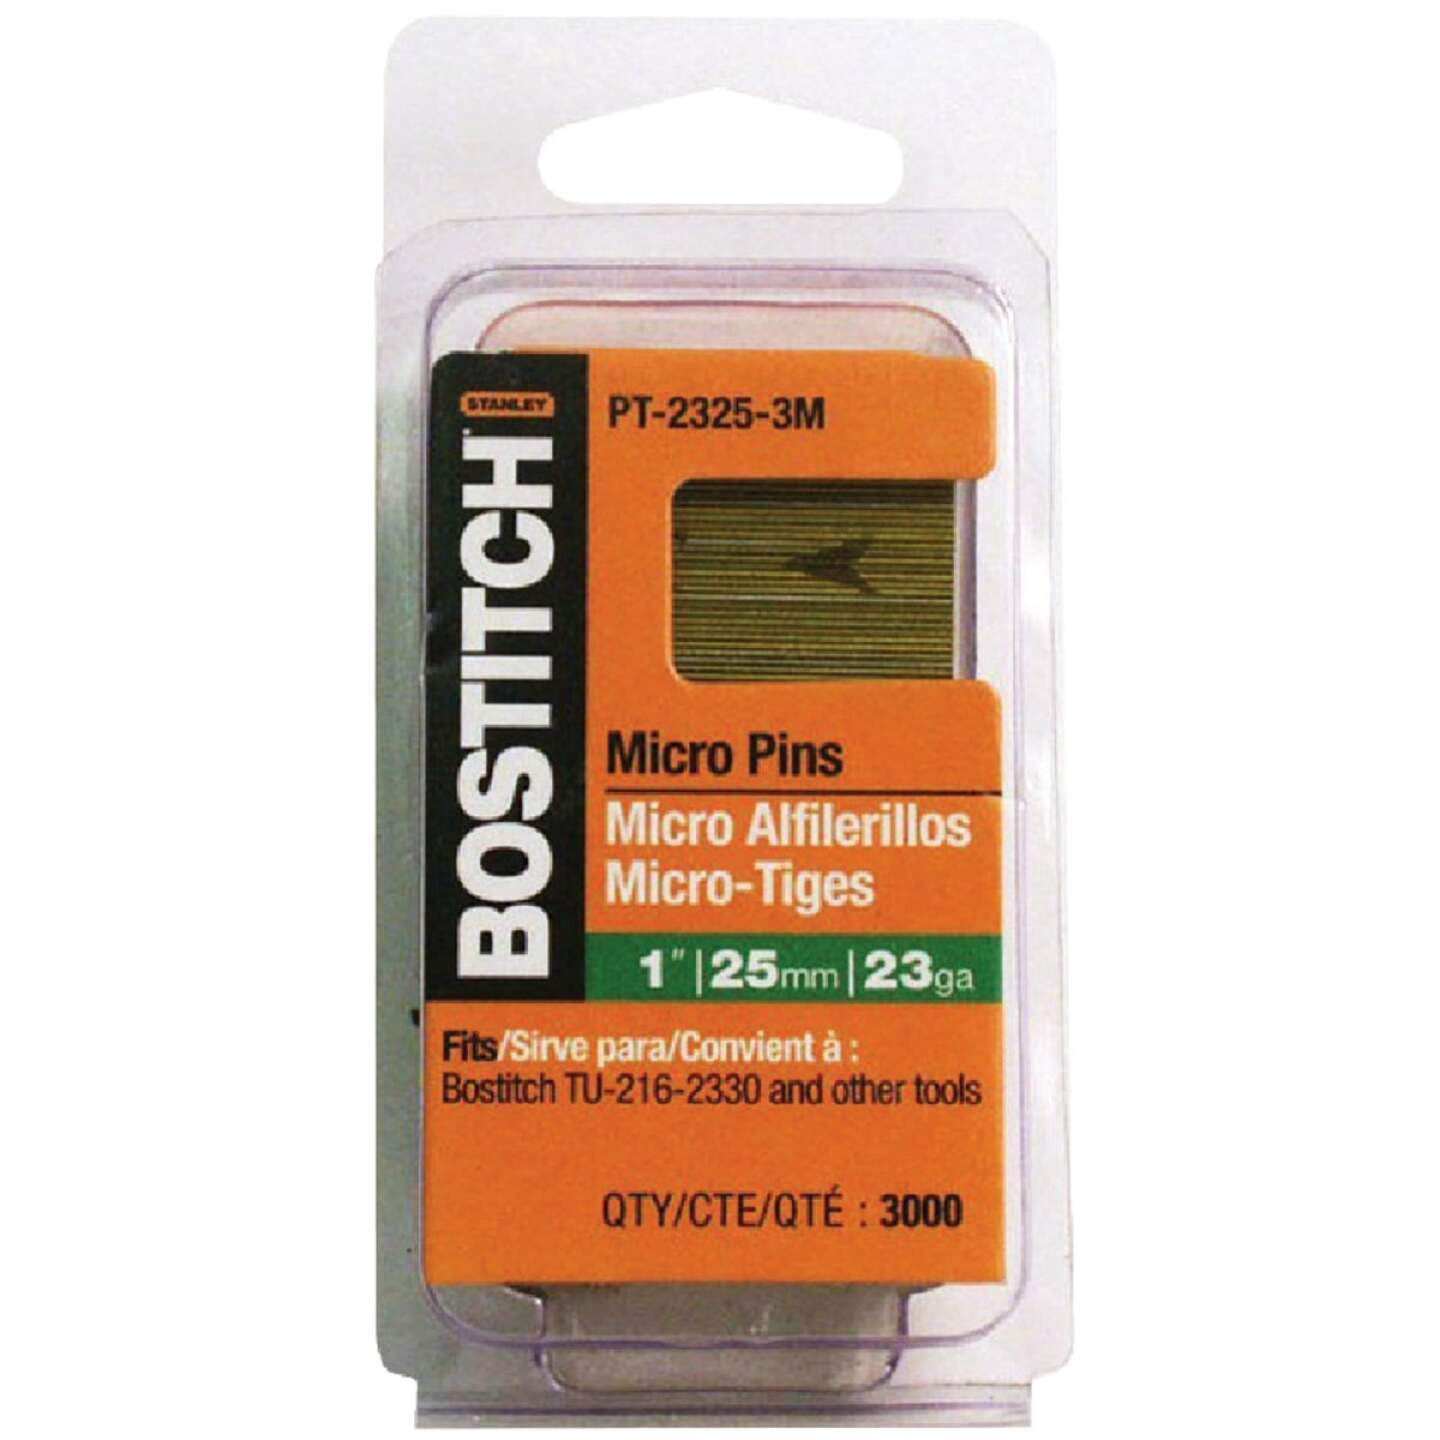 Bostitch 23-Gauge Coated Pin Nail, 1/2 In. (3000 Ct.) Image 1